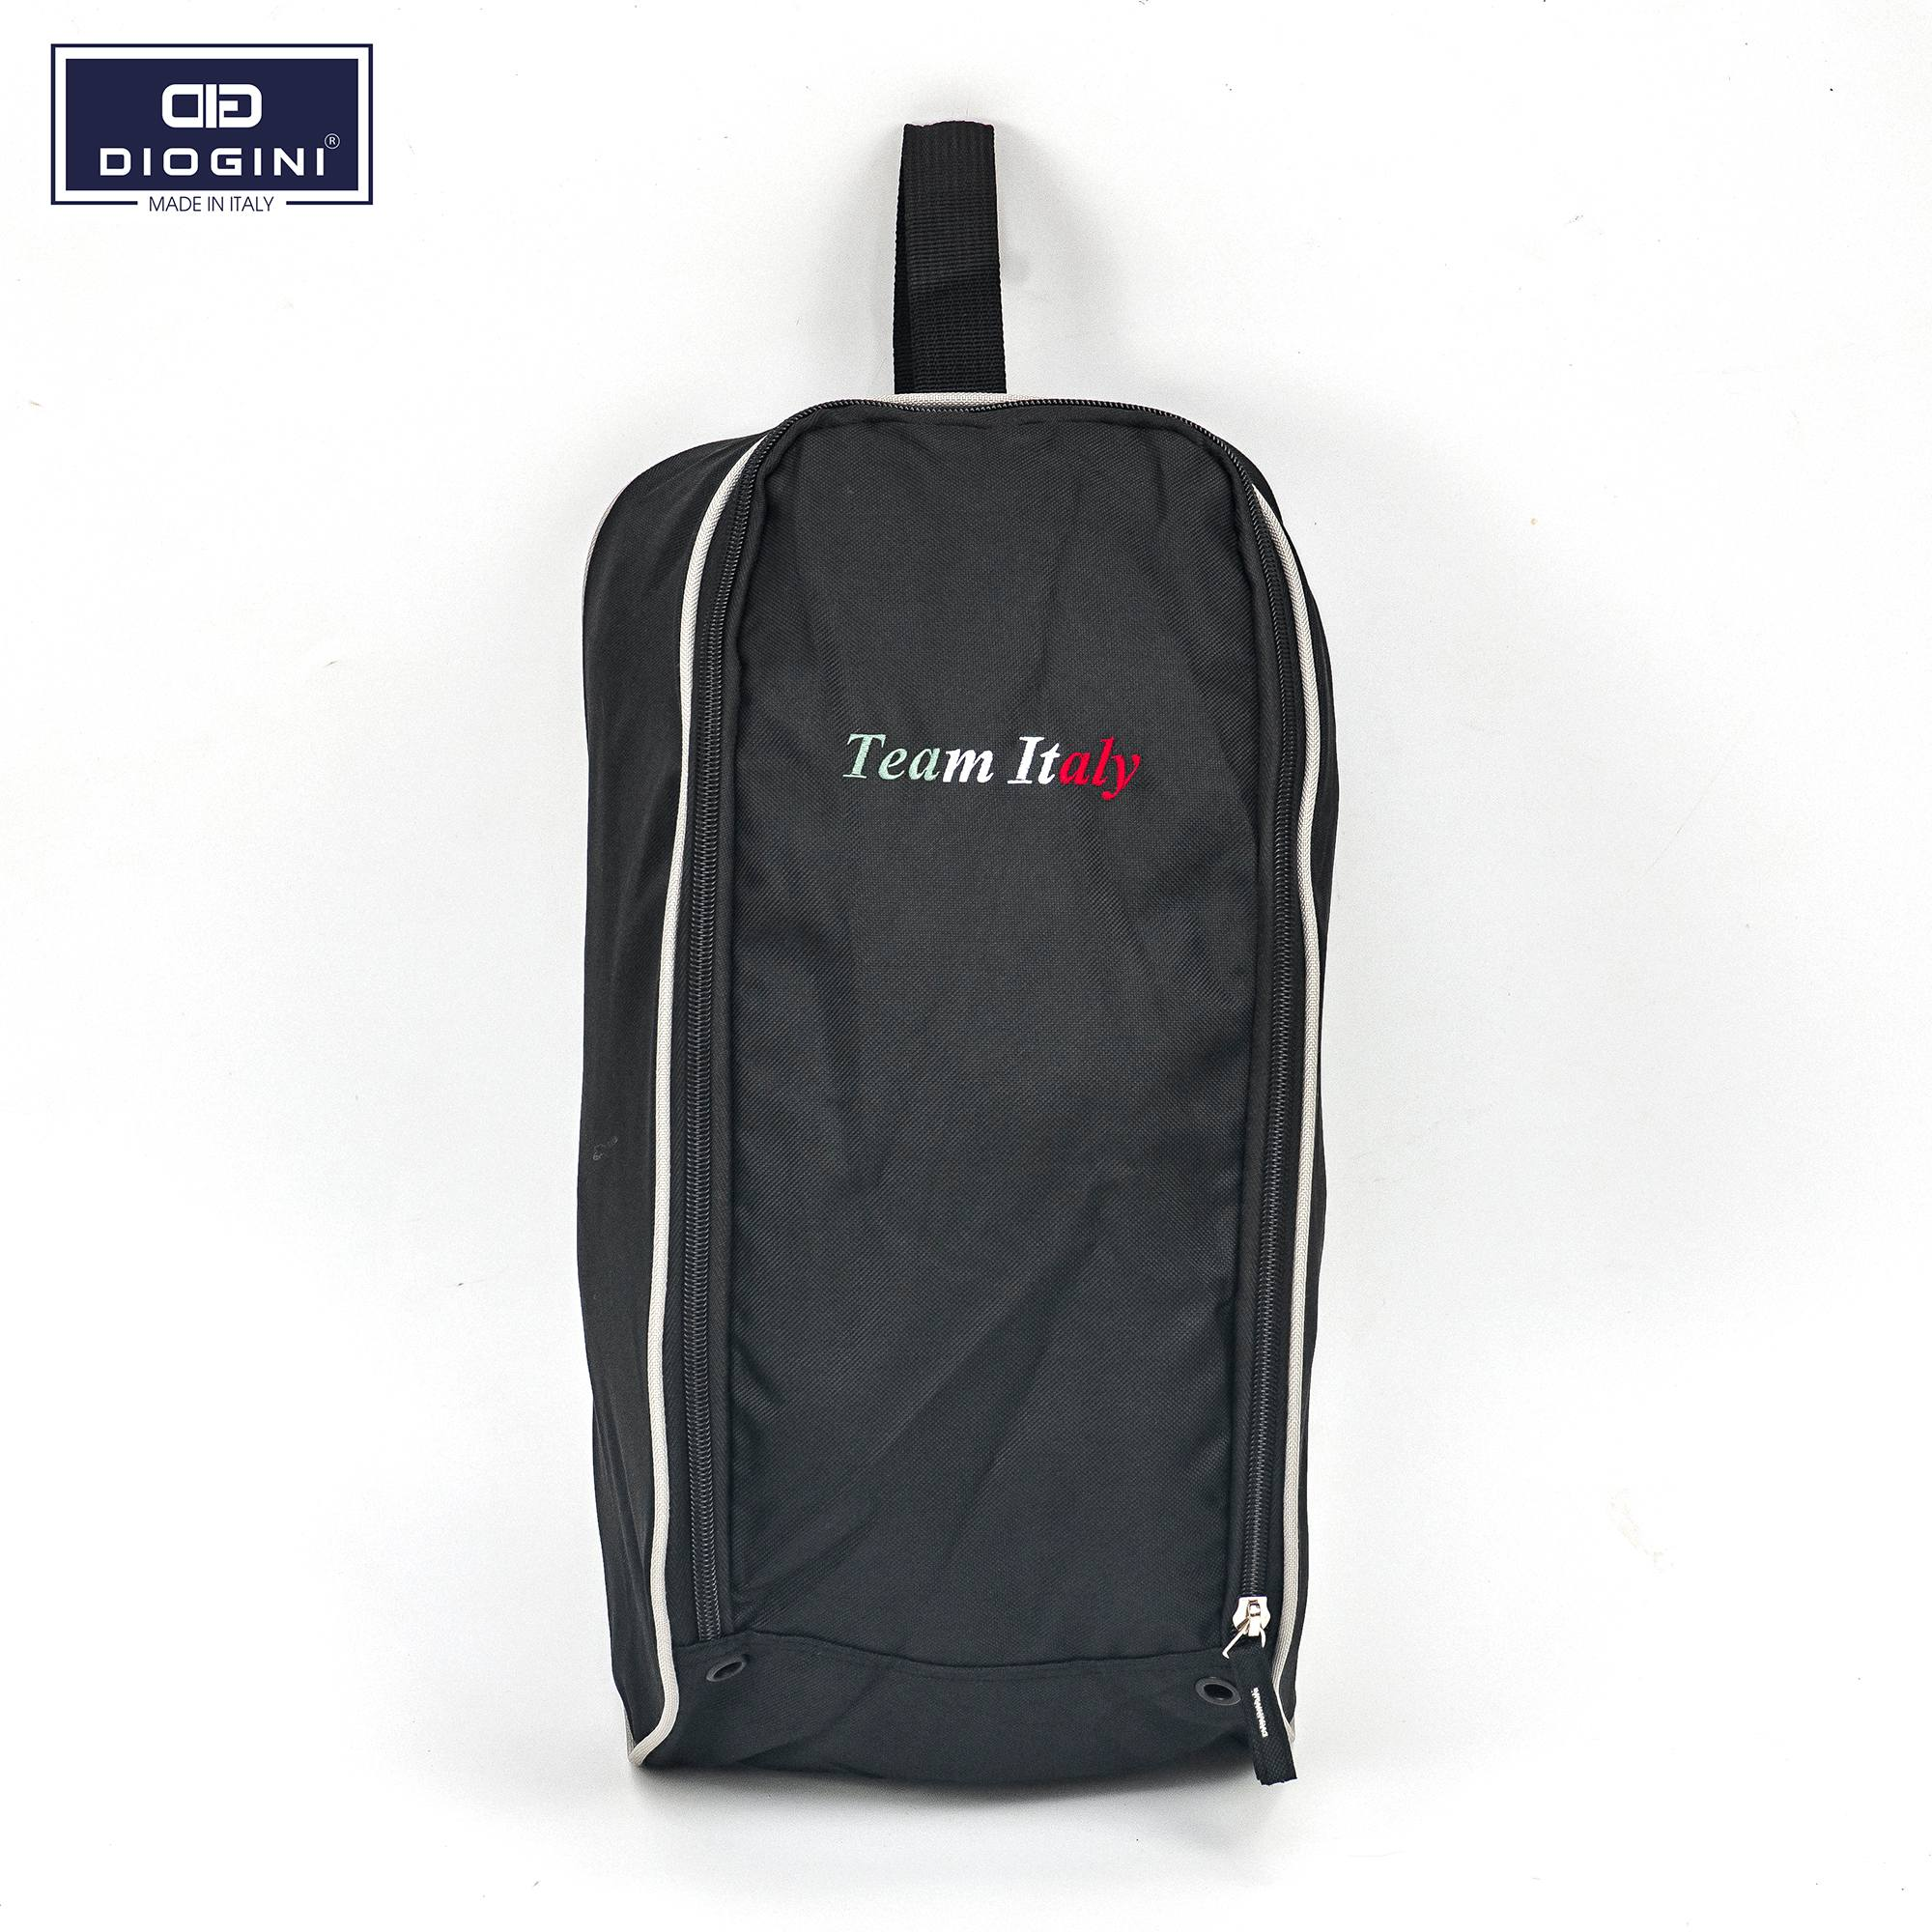 TÚI ĐỰNG GIÀY TEAM ITALY - SHOES BAG